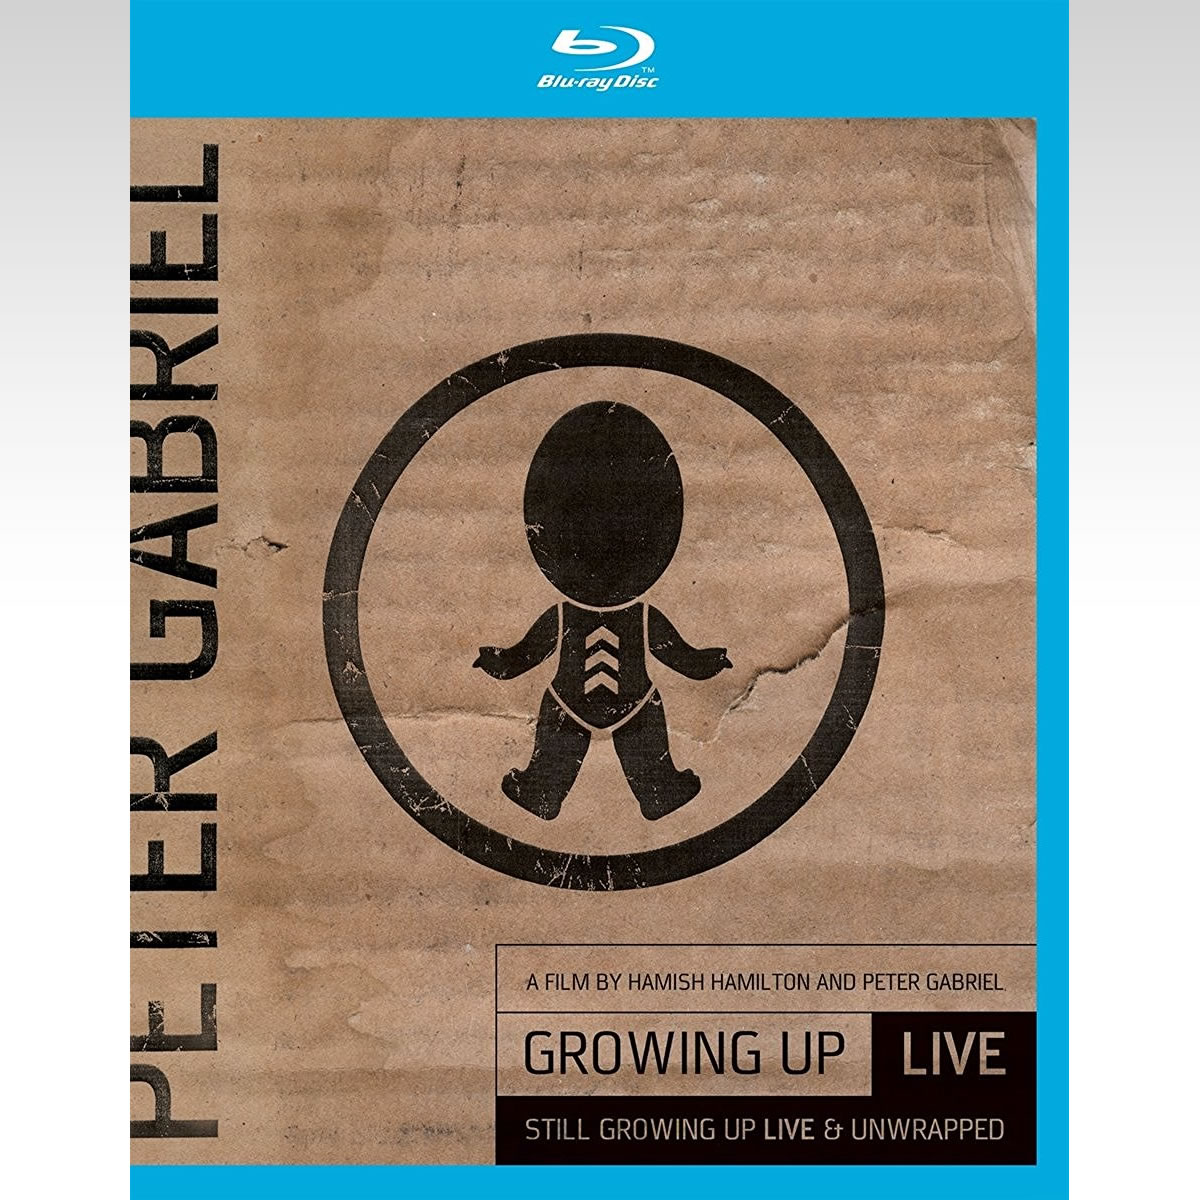 PETER GABRIEL: GROWING UP LIVE AND STILL GROWING UP LIVE AND UNWRAPPED (BLU-RAY + DVD)